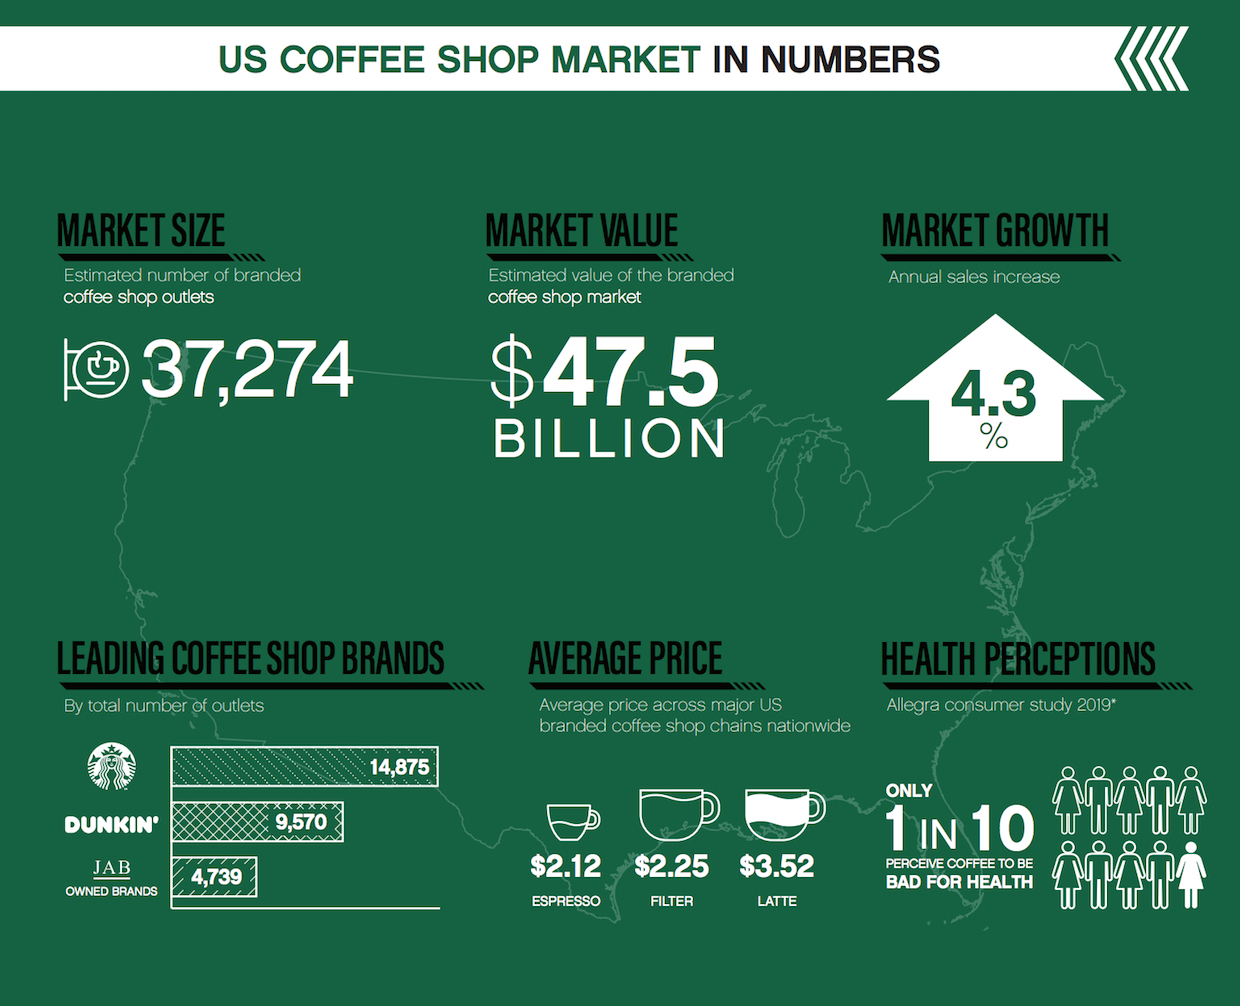 Nearly Four Of Every Five Us Coffee Shops Are Now Starbucks Dunkin Or Jab Brandsdaily Coffee News By Roast Magazine